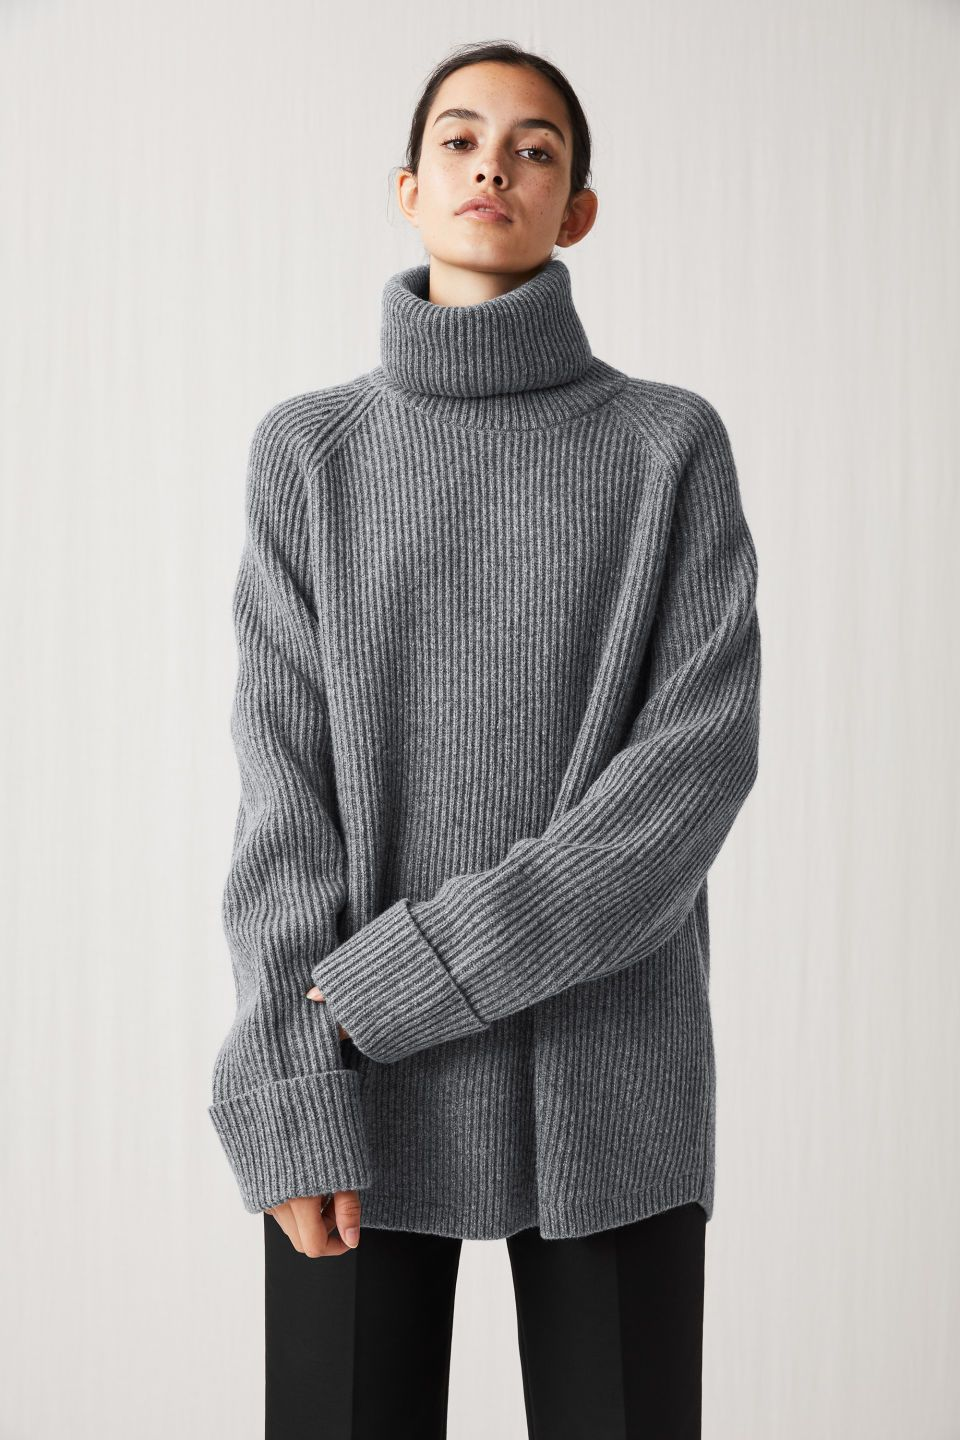 416a8a1c9 222169-020 Relaxed Turtleneck Jumper. Knitted in full cardigan ...